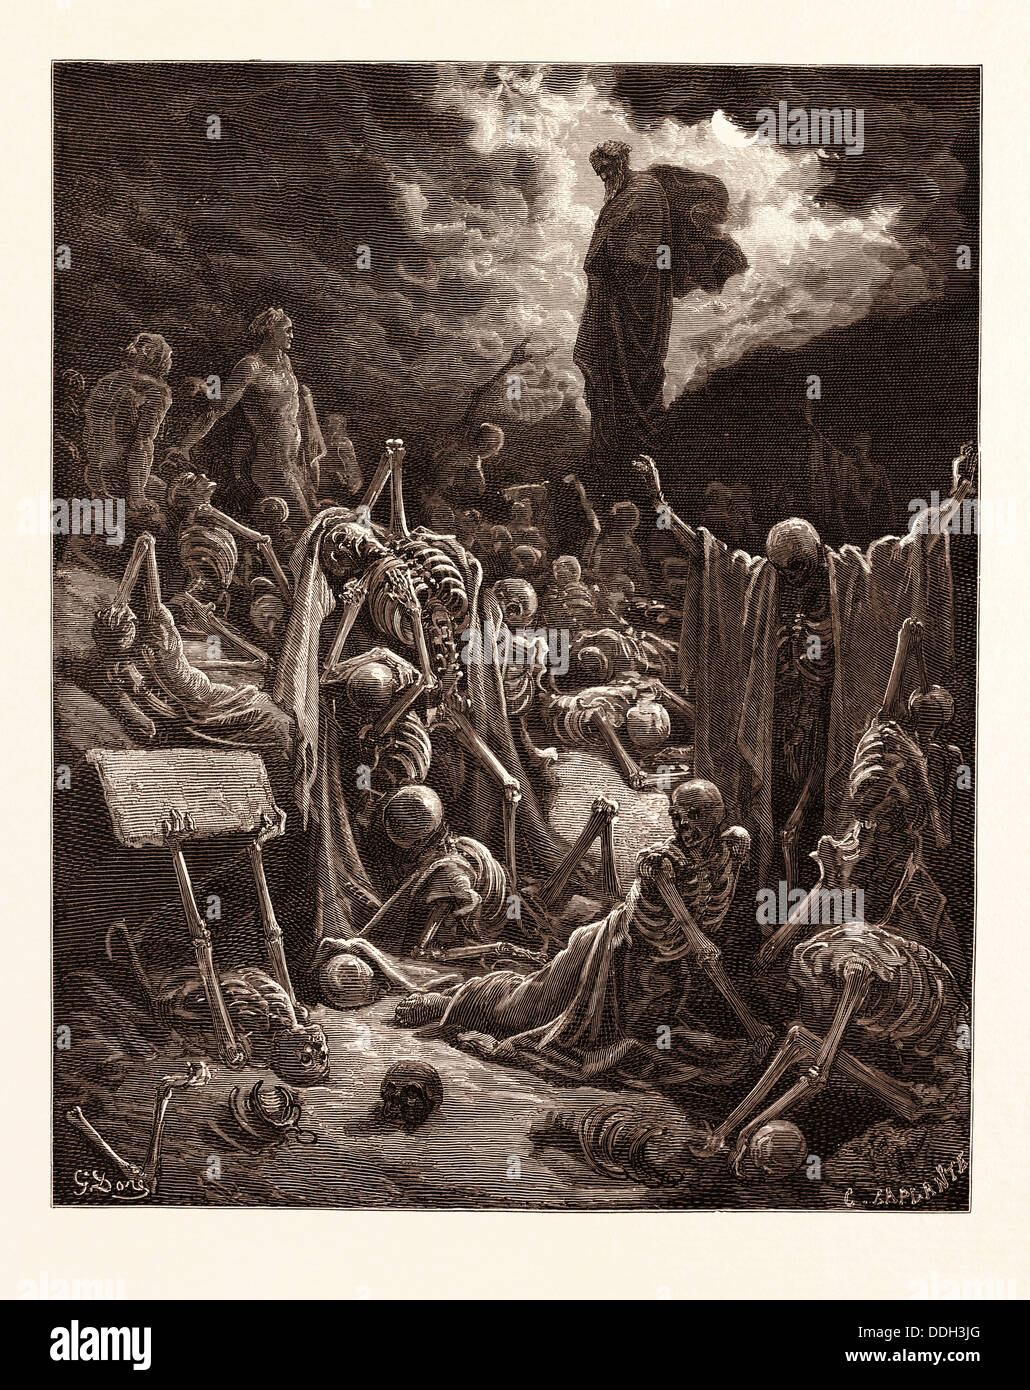 THE VISION OF THE VALLEY OF DRY BONES, EZEKIEL BY GUSTAVE DORÉ. Dore, 1832 - 1883, French. 1870, Art, Artist, - Stock Image